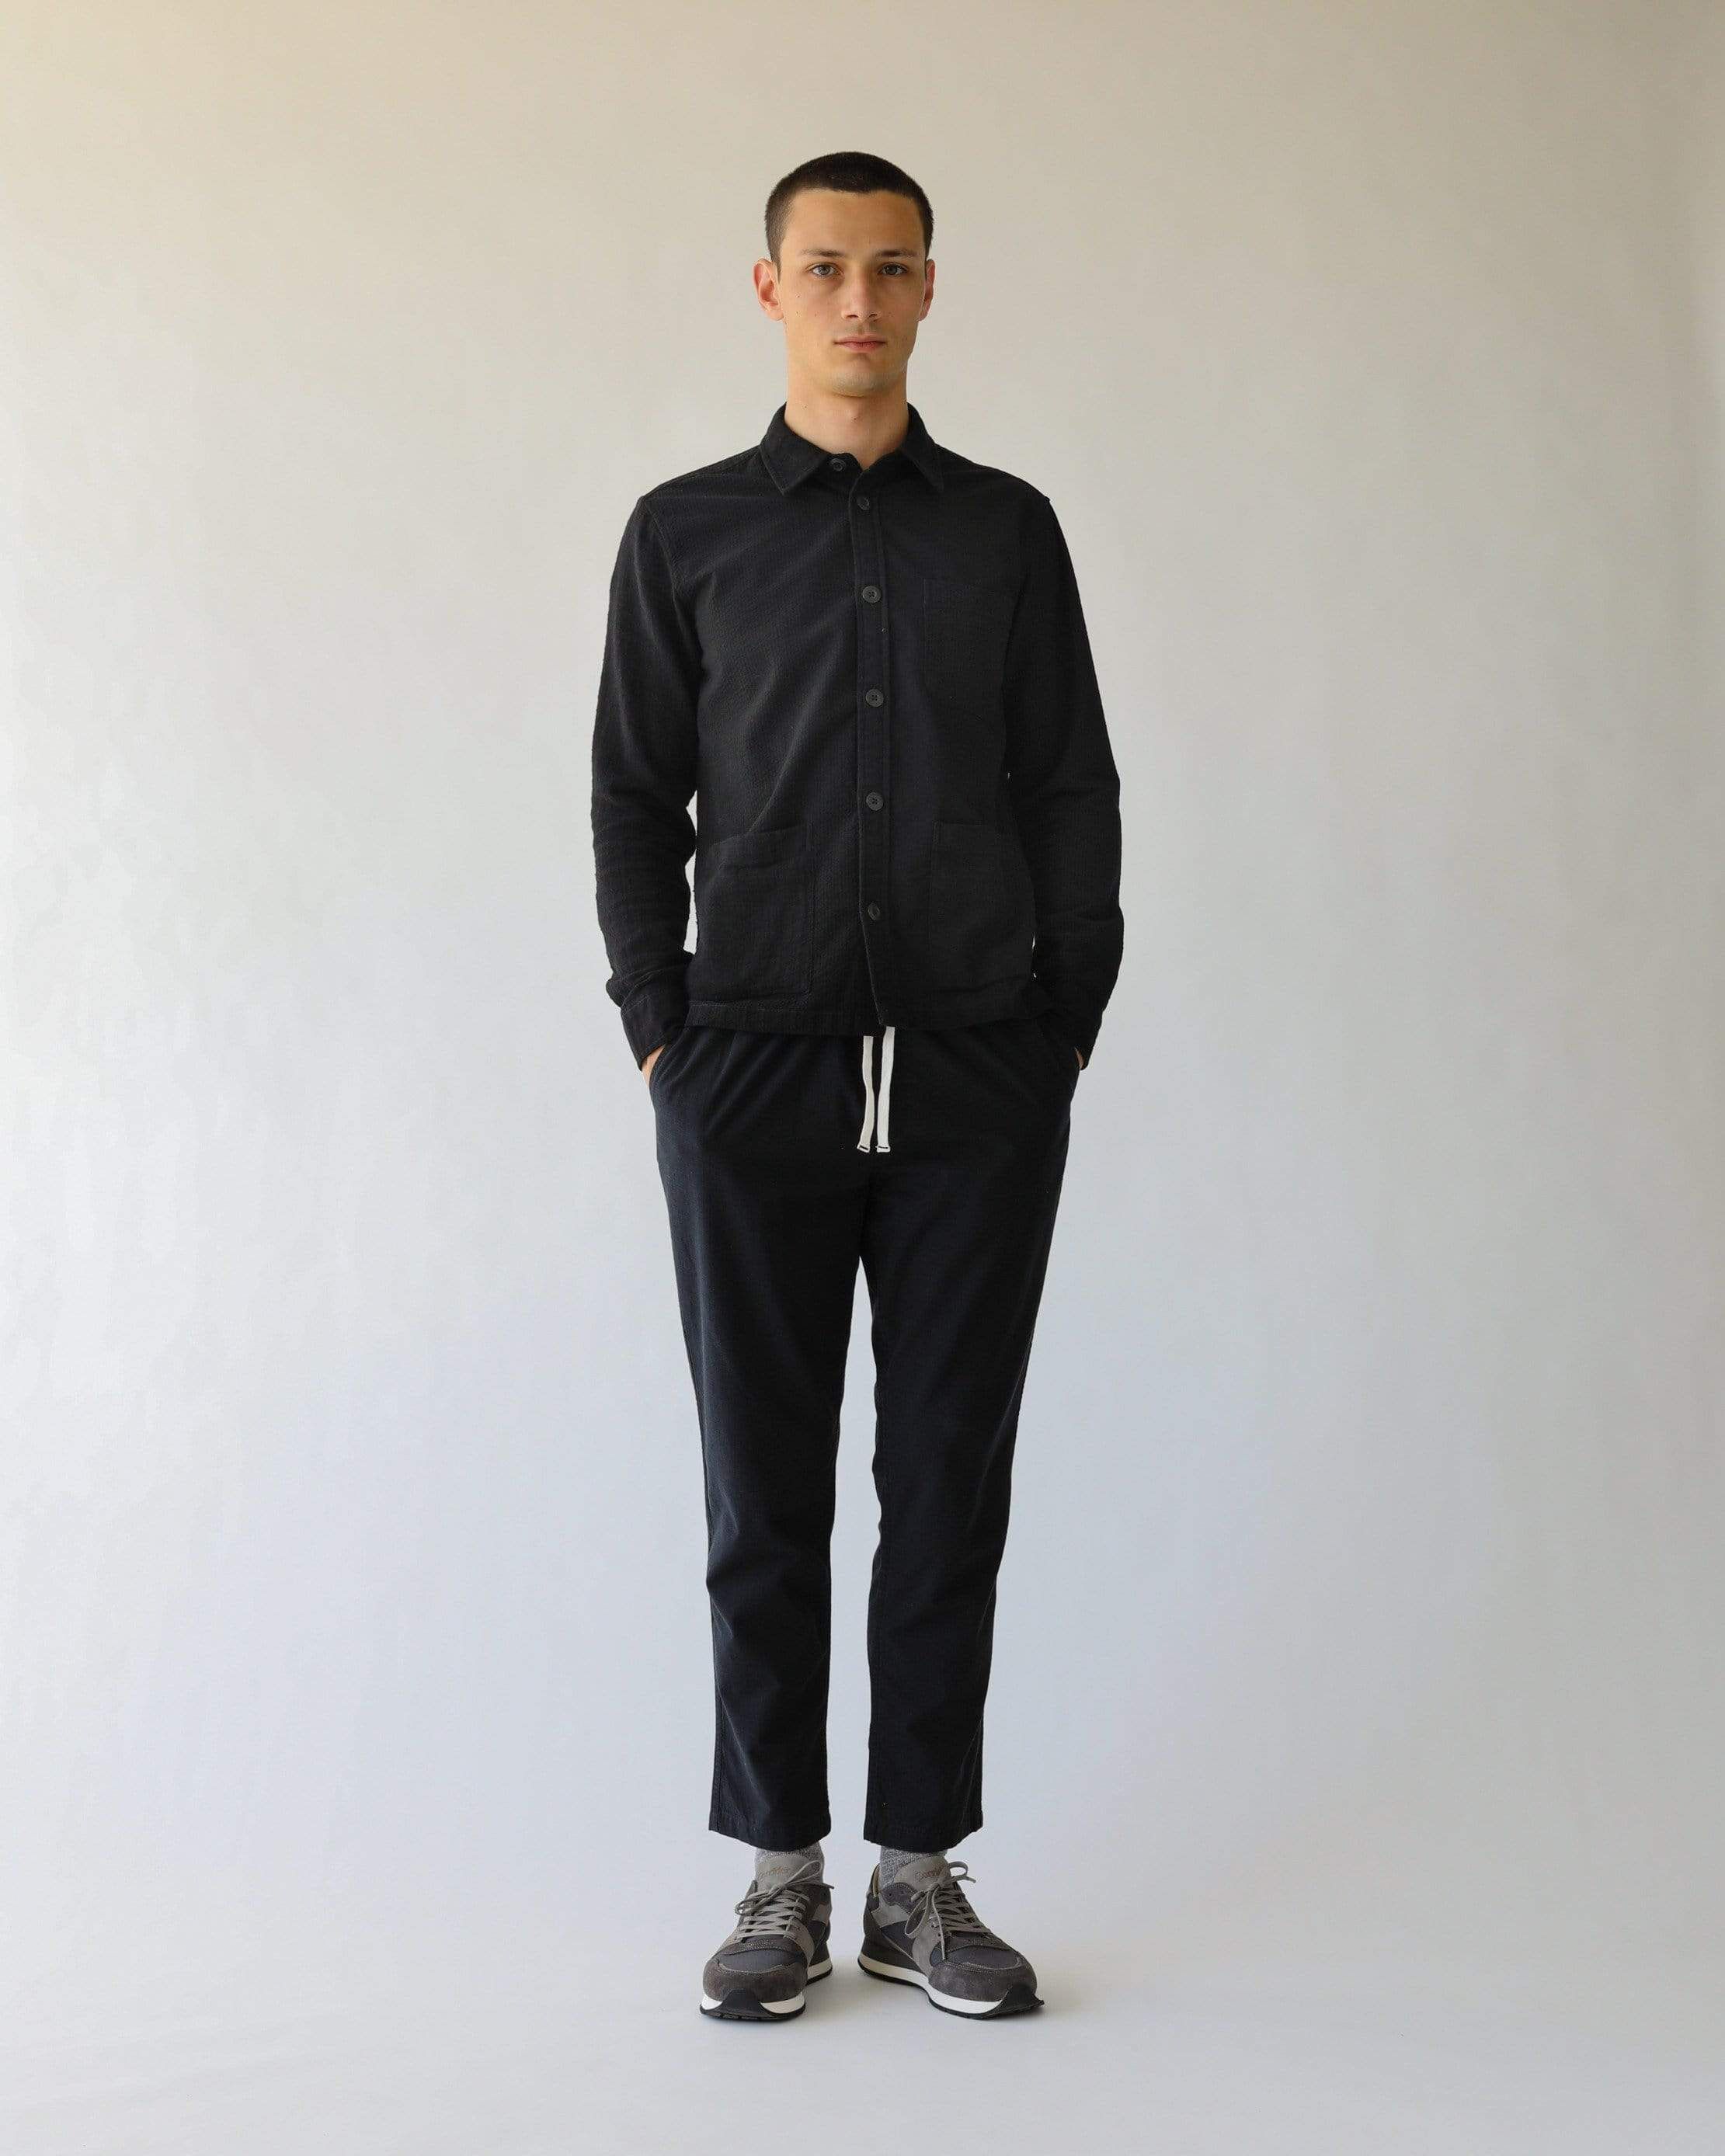 Paneled Black Overshirt